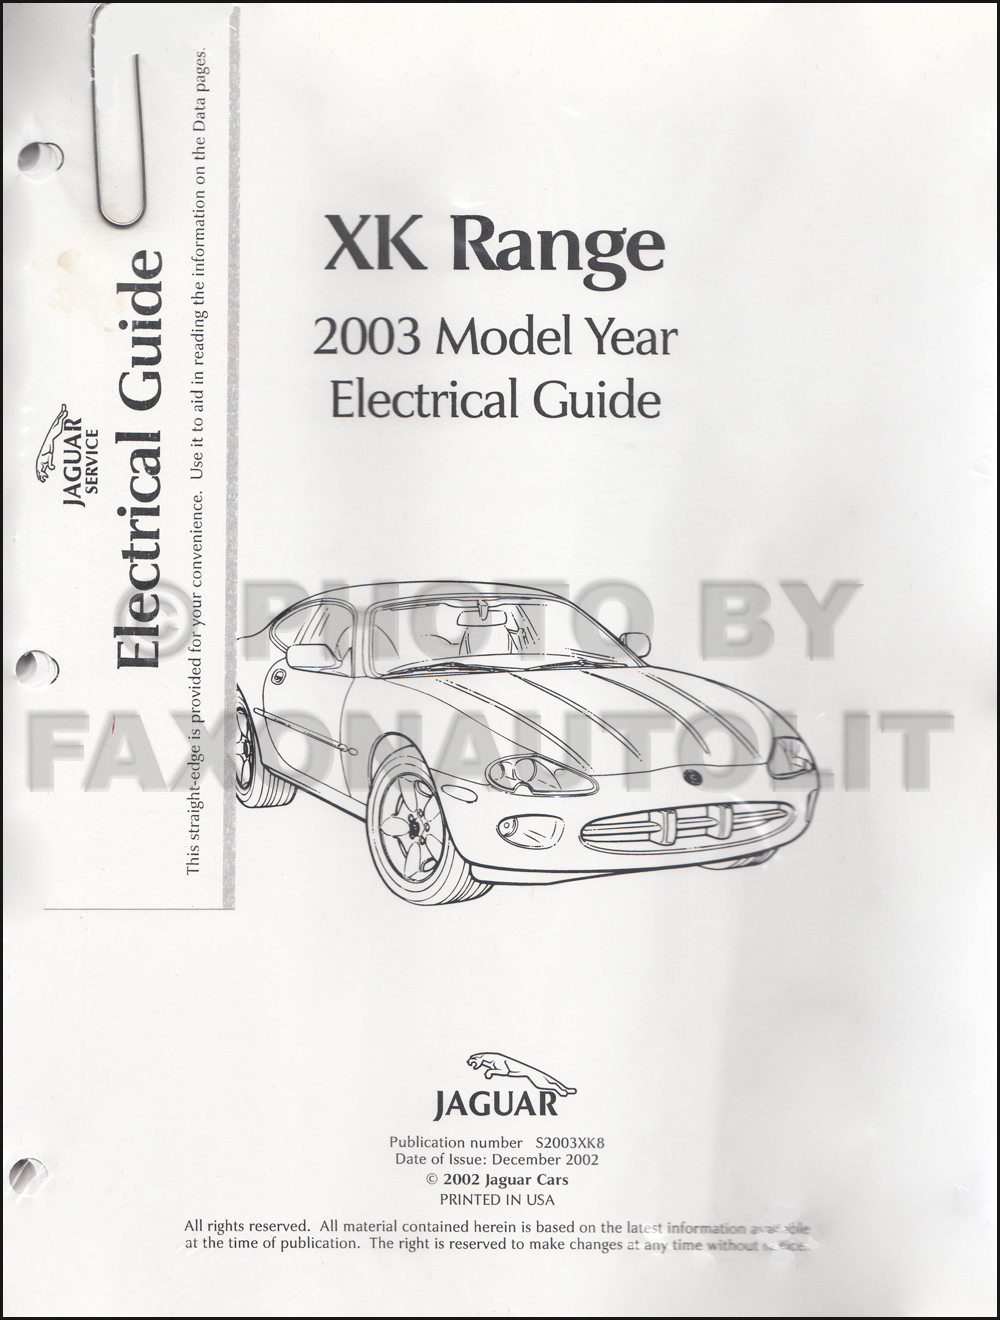 2003 Jaguar Xk8 And Xkr Electrical Guide Wiring Diagram Wiring Diagram 2001 Jaguar  XJ8 Jaguar Xkr Wiring Diagram